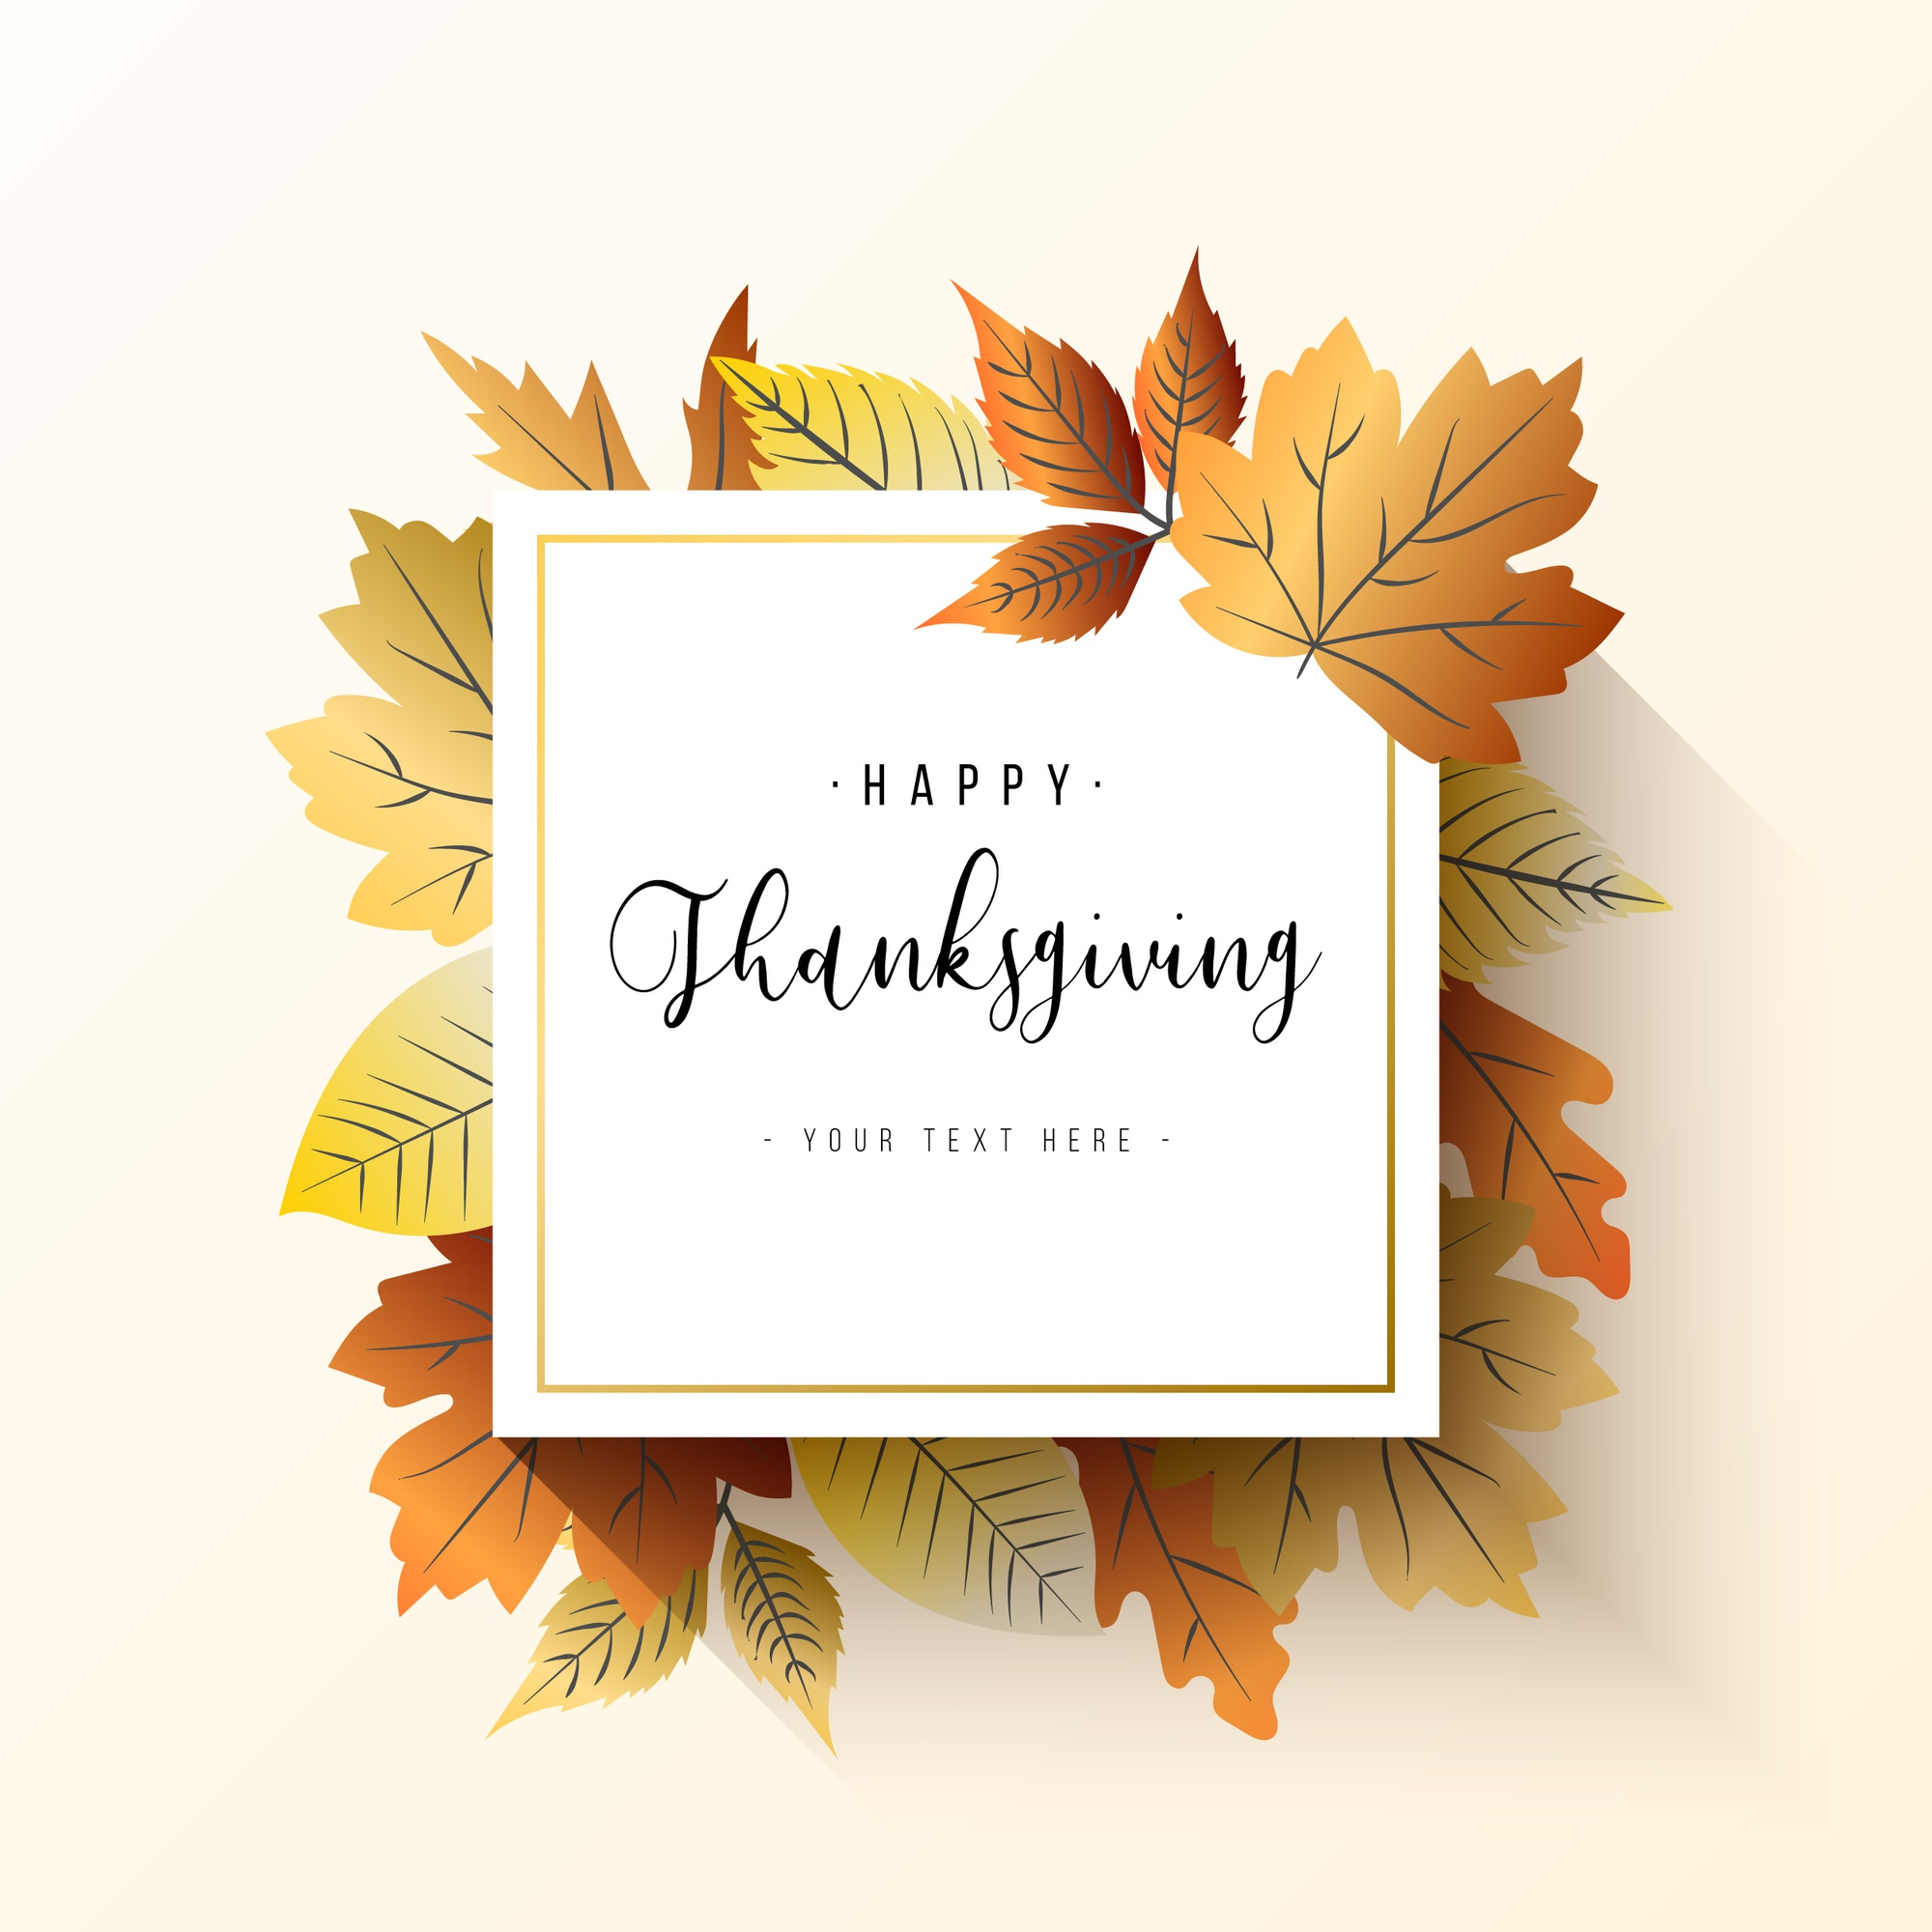 Elegant Thanksgiving frame with leaves